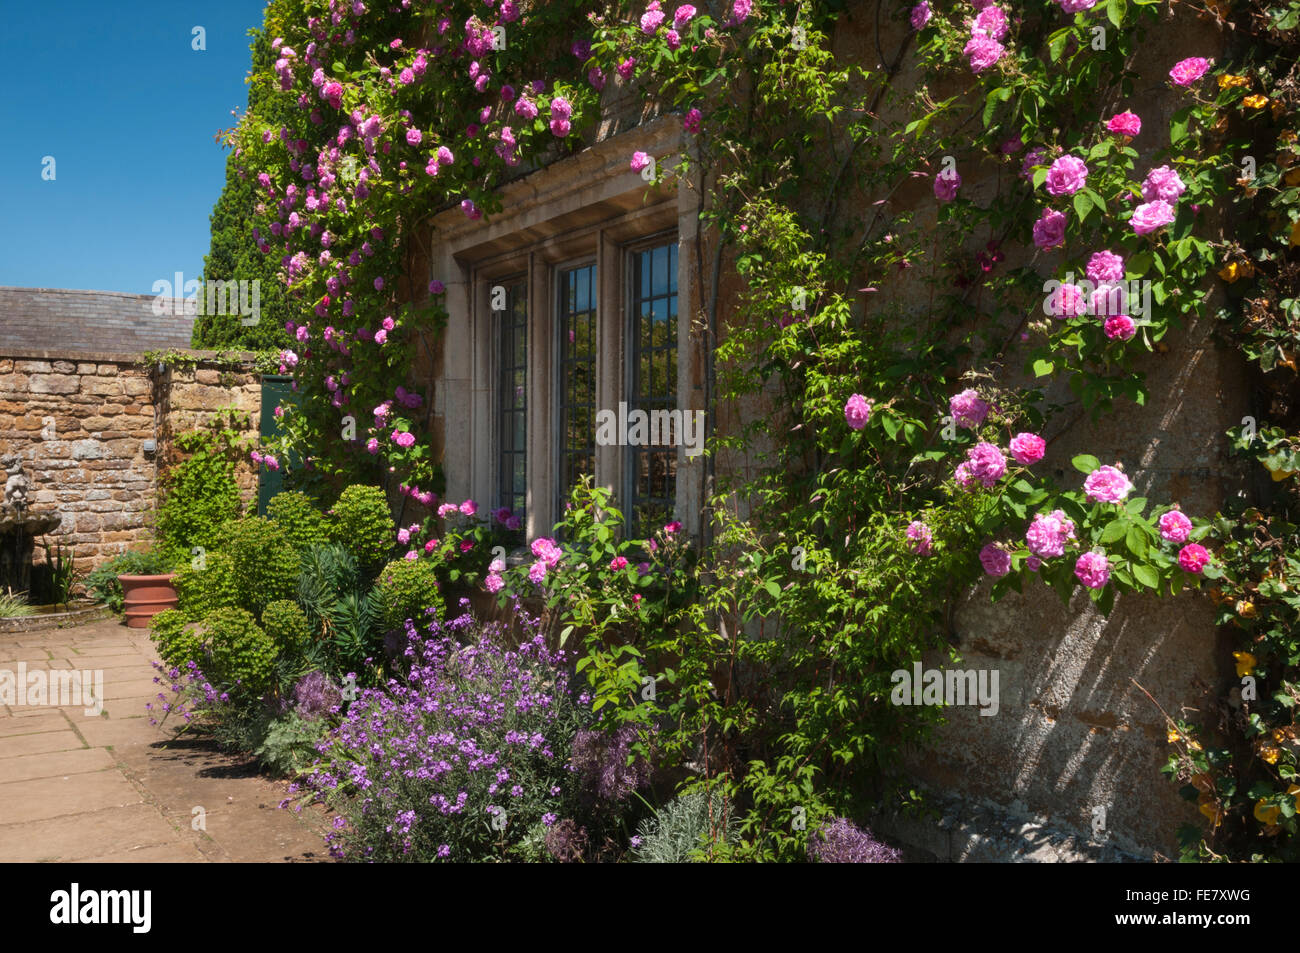 Summer flowers and pink roses framing a mullion window on the terrace of Coton Manor in Northamptonshire, England - Stock Image